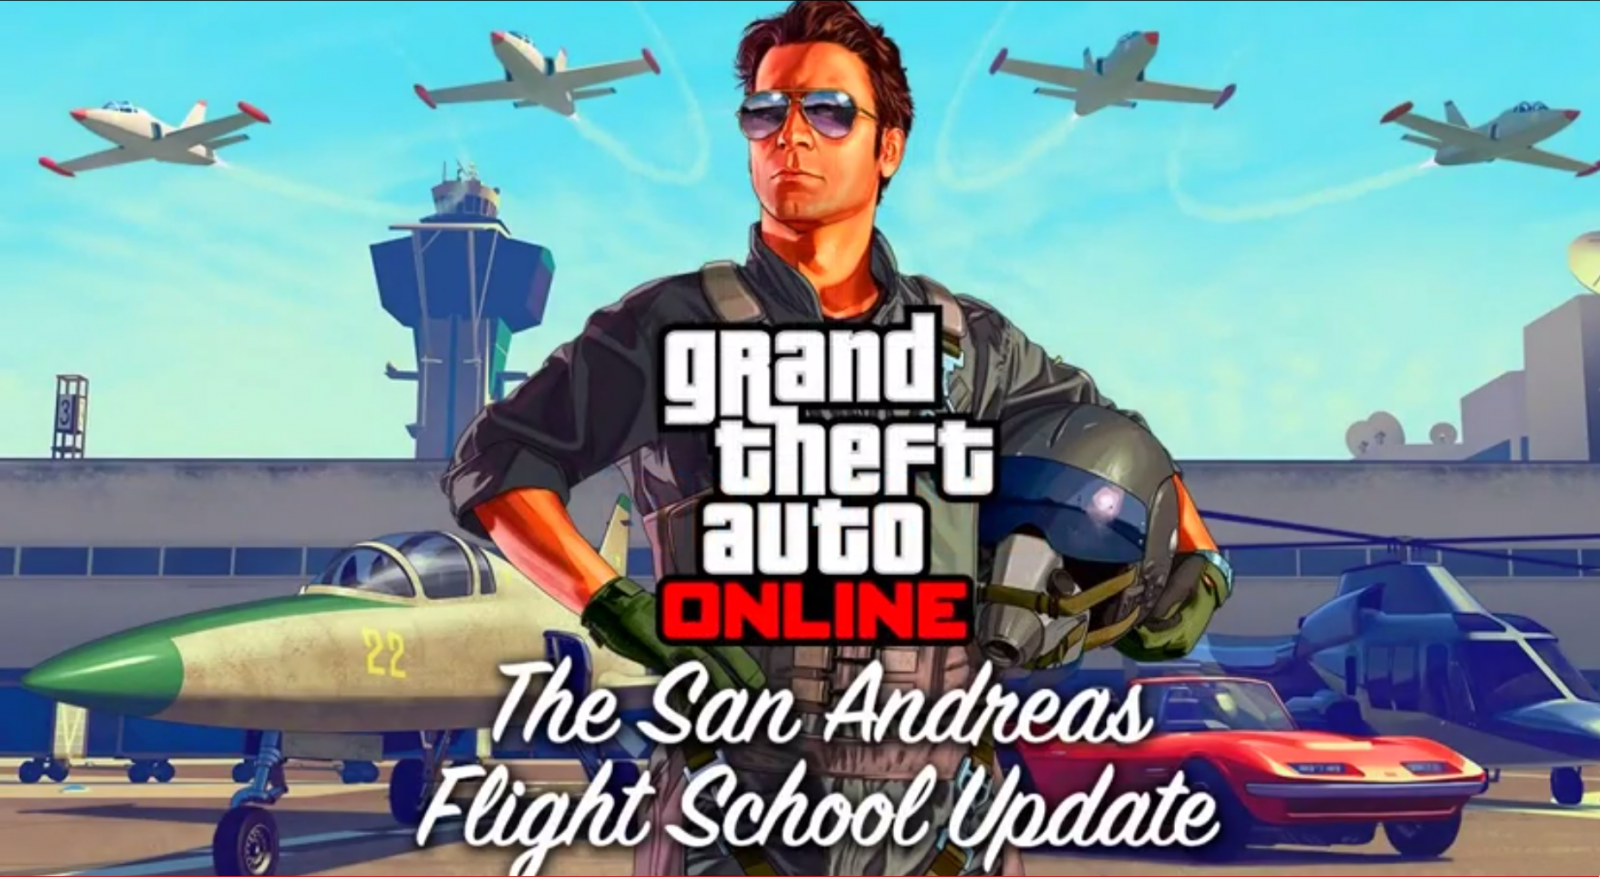 GTA 5 Mods Online: UFOs and Modded Money Lobbies are Back in 1.16 Update